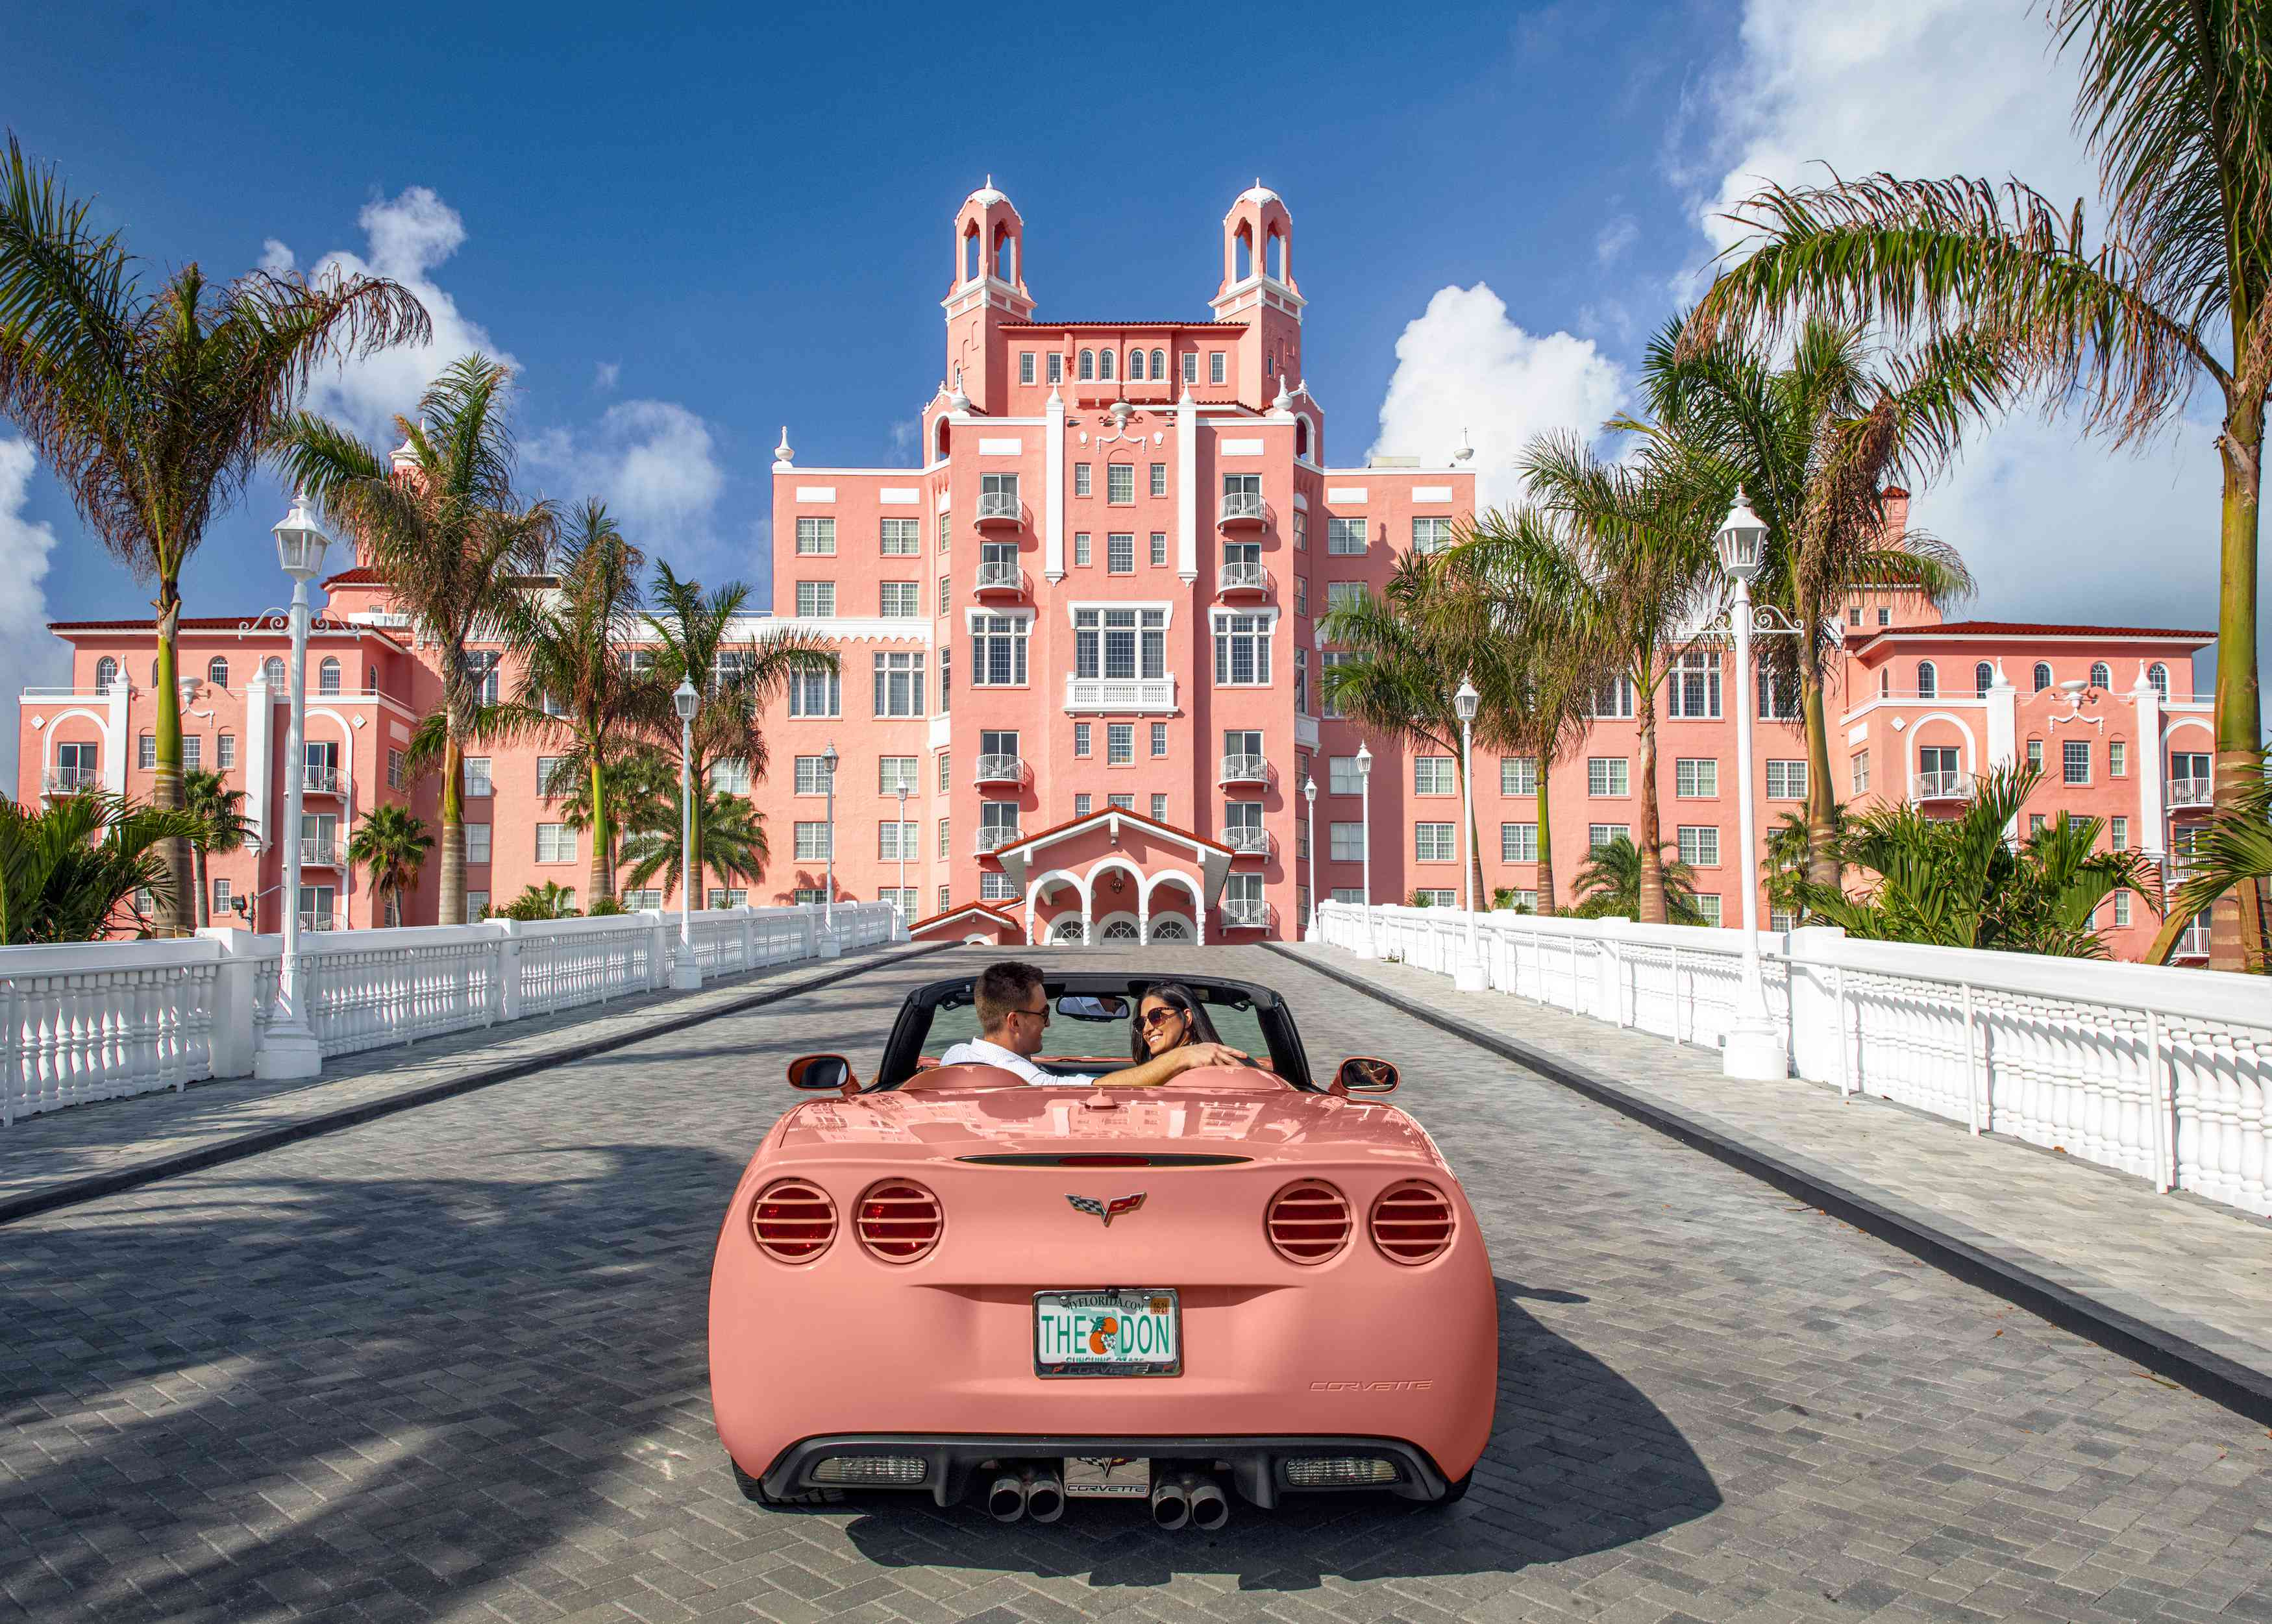 Pink convertible on the entry drive of The Don CeSar Resort in St. Pete Beach